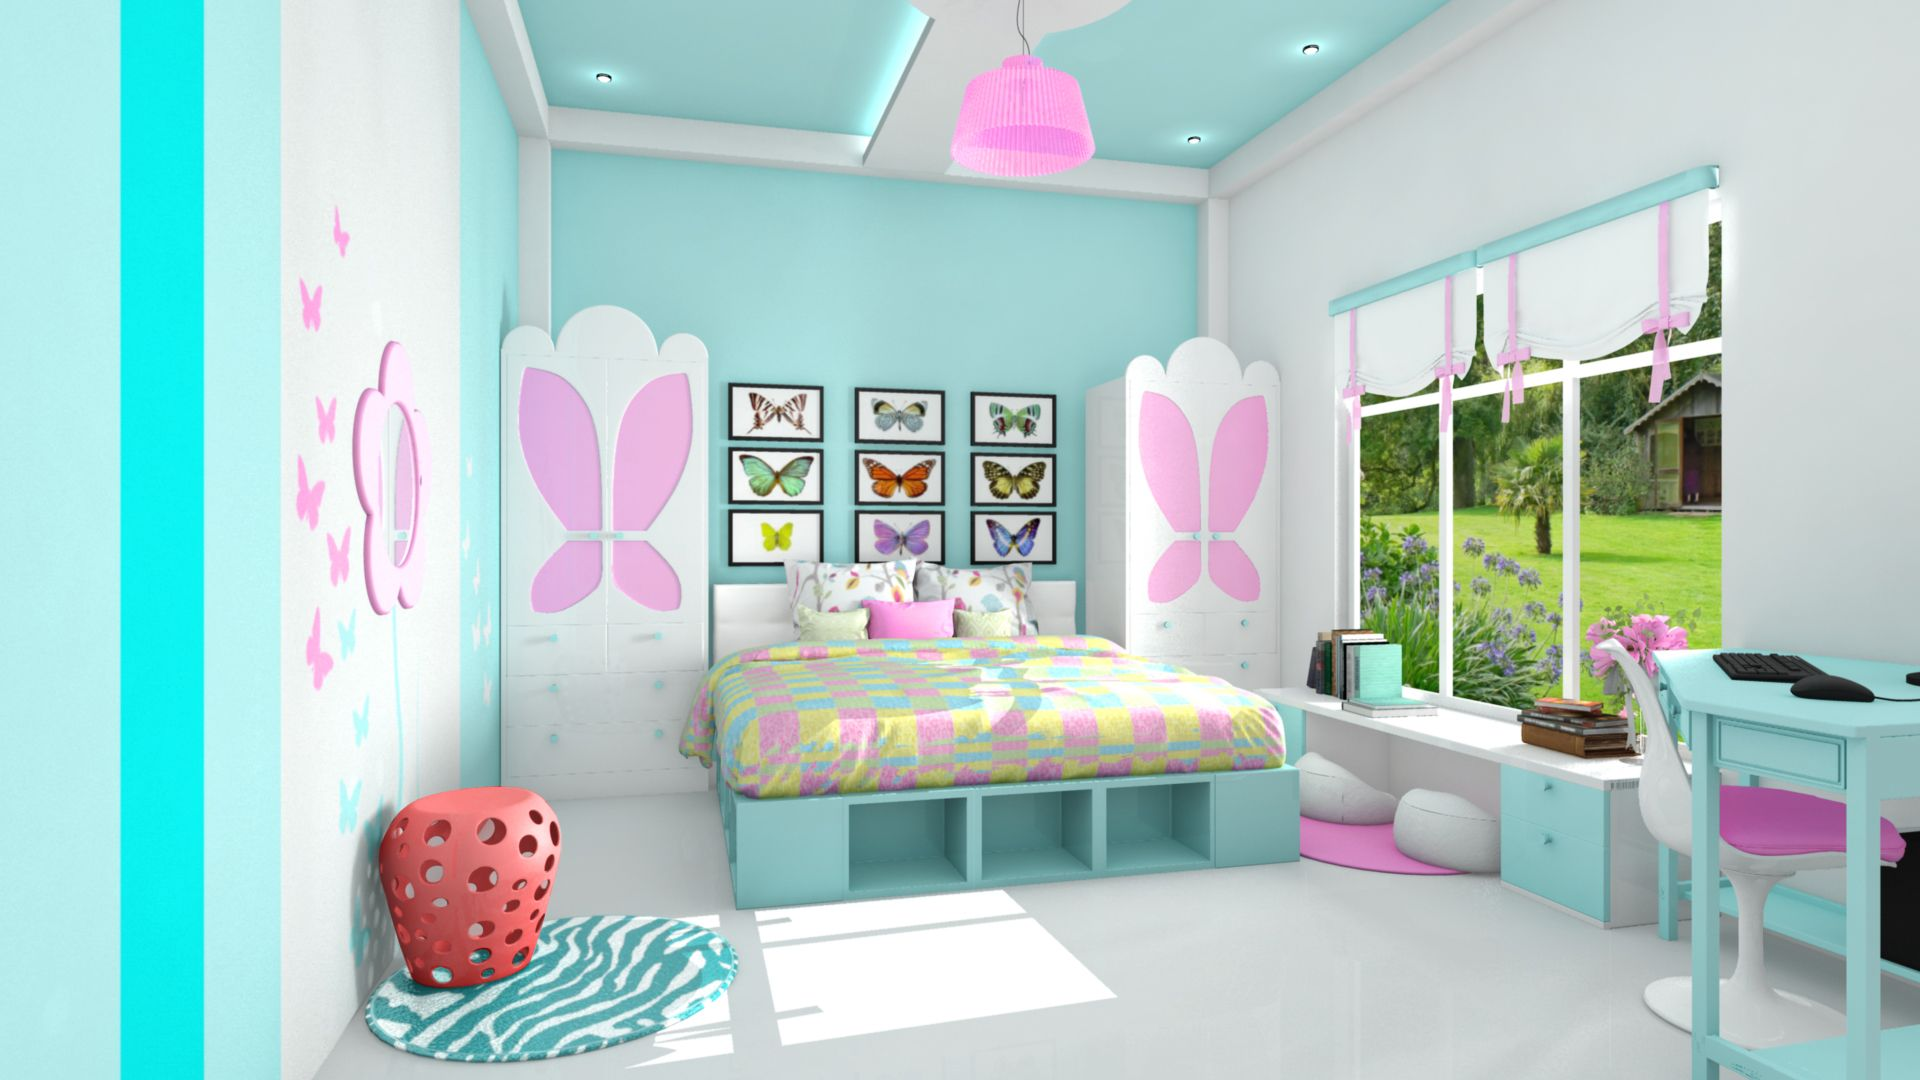 Ten yirs olde bed rooms design young girl bedroom for Girl bedroom ideas pictures